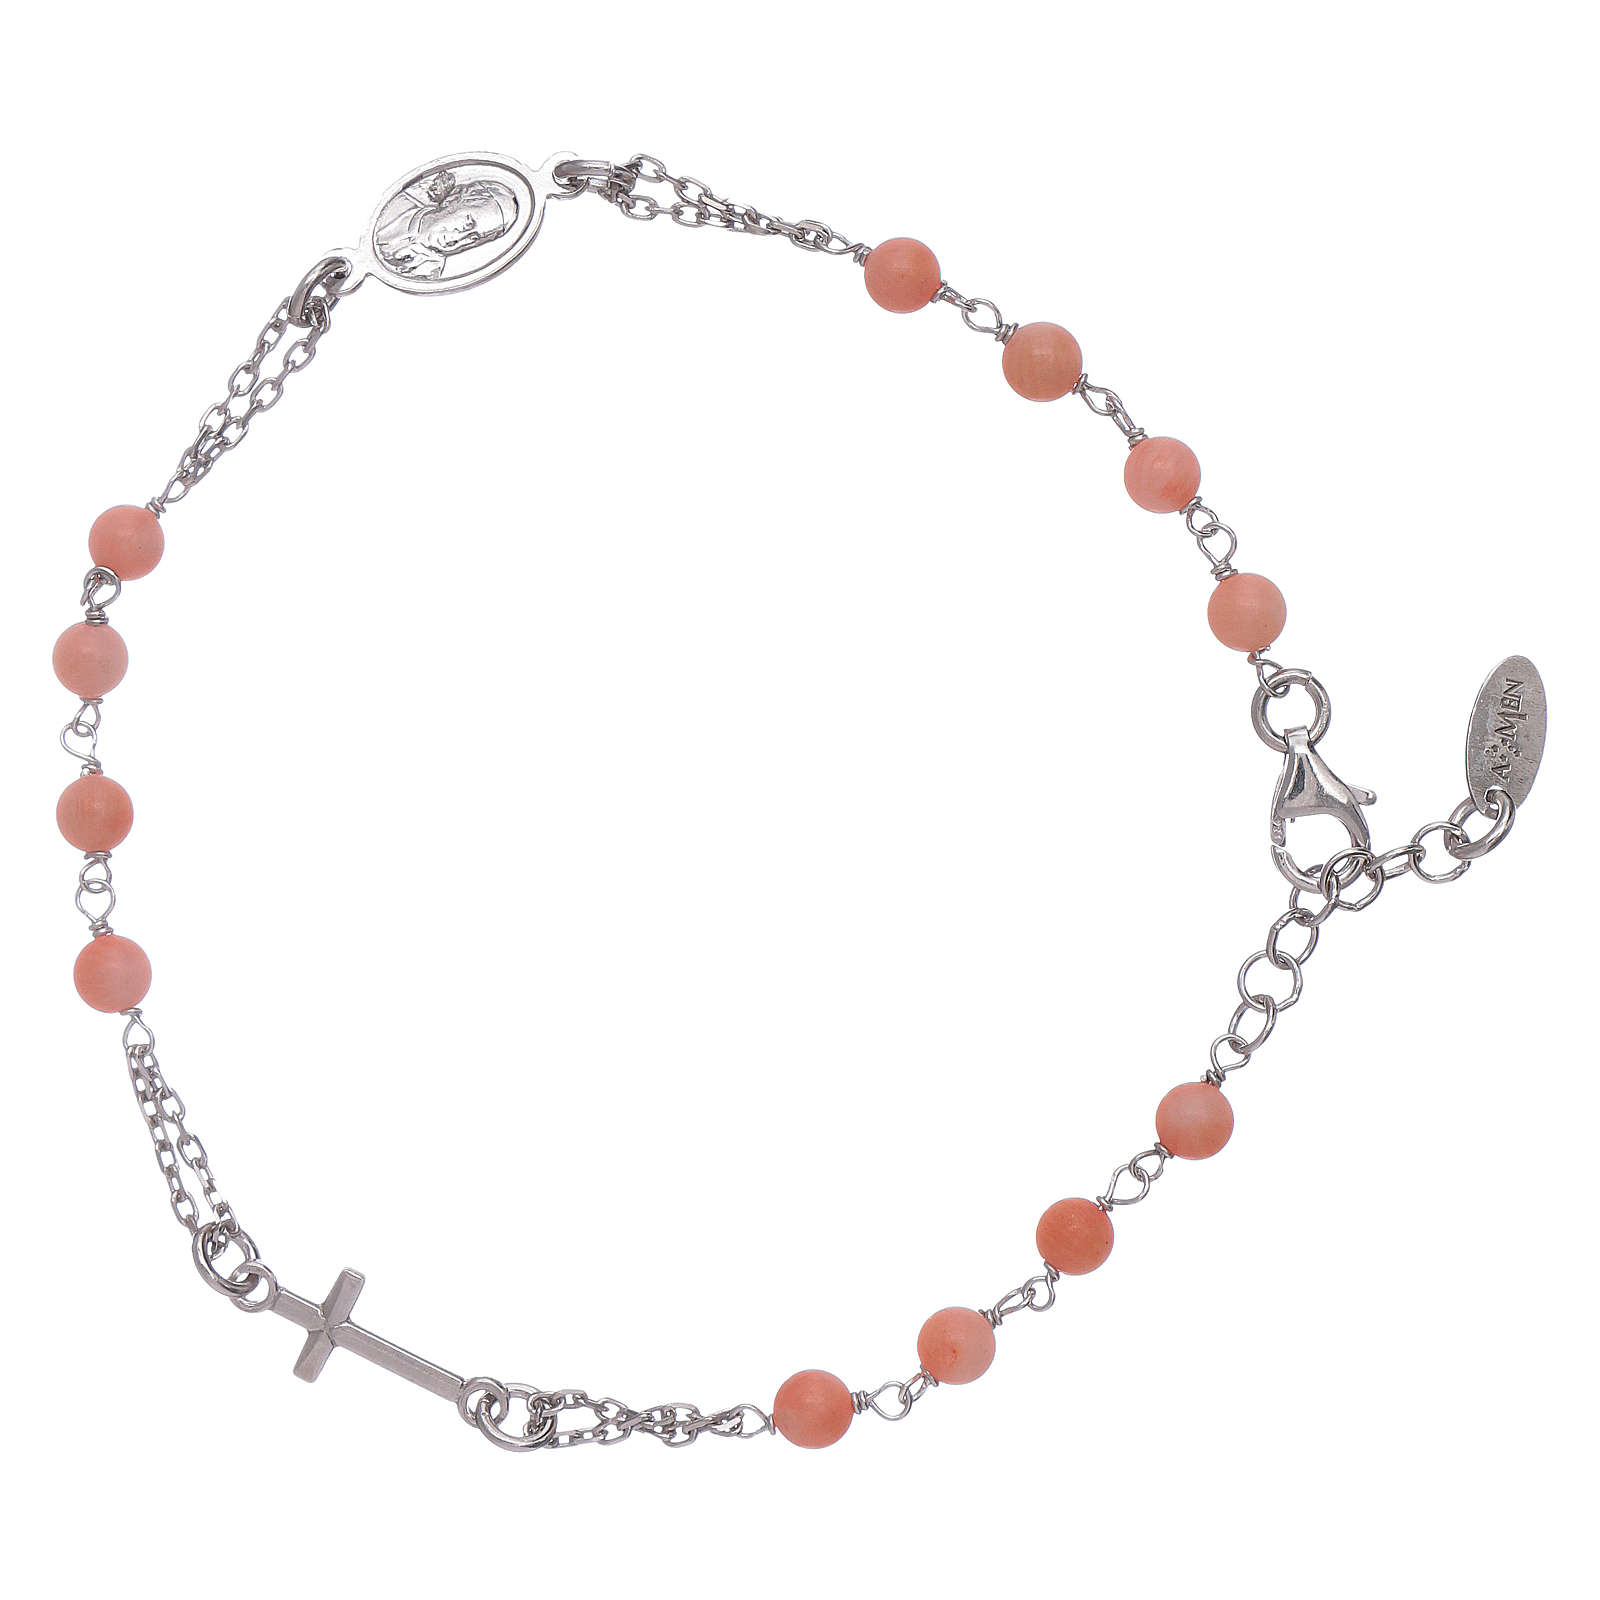 Amen 925 Sterling Silver Rosary Bracelet With Bamboo Coral Online